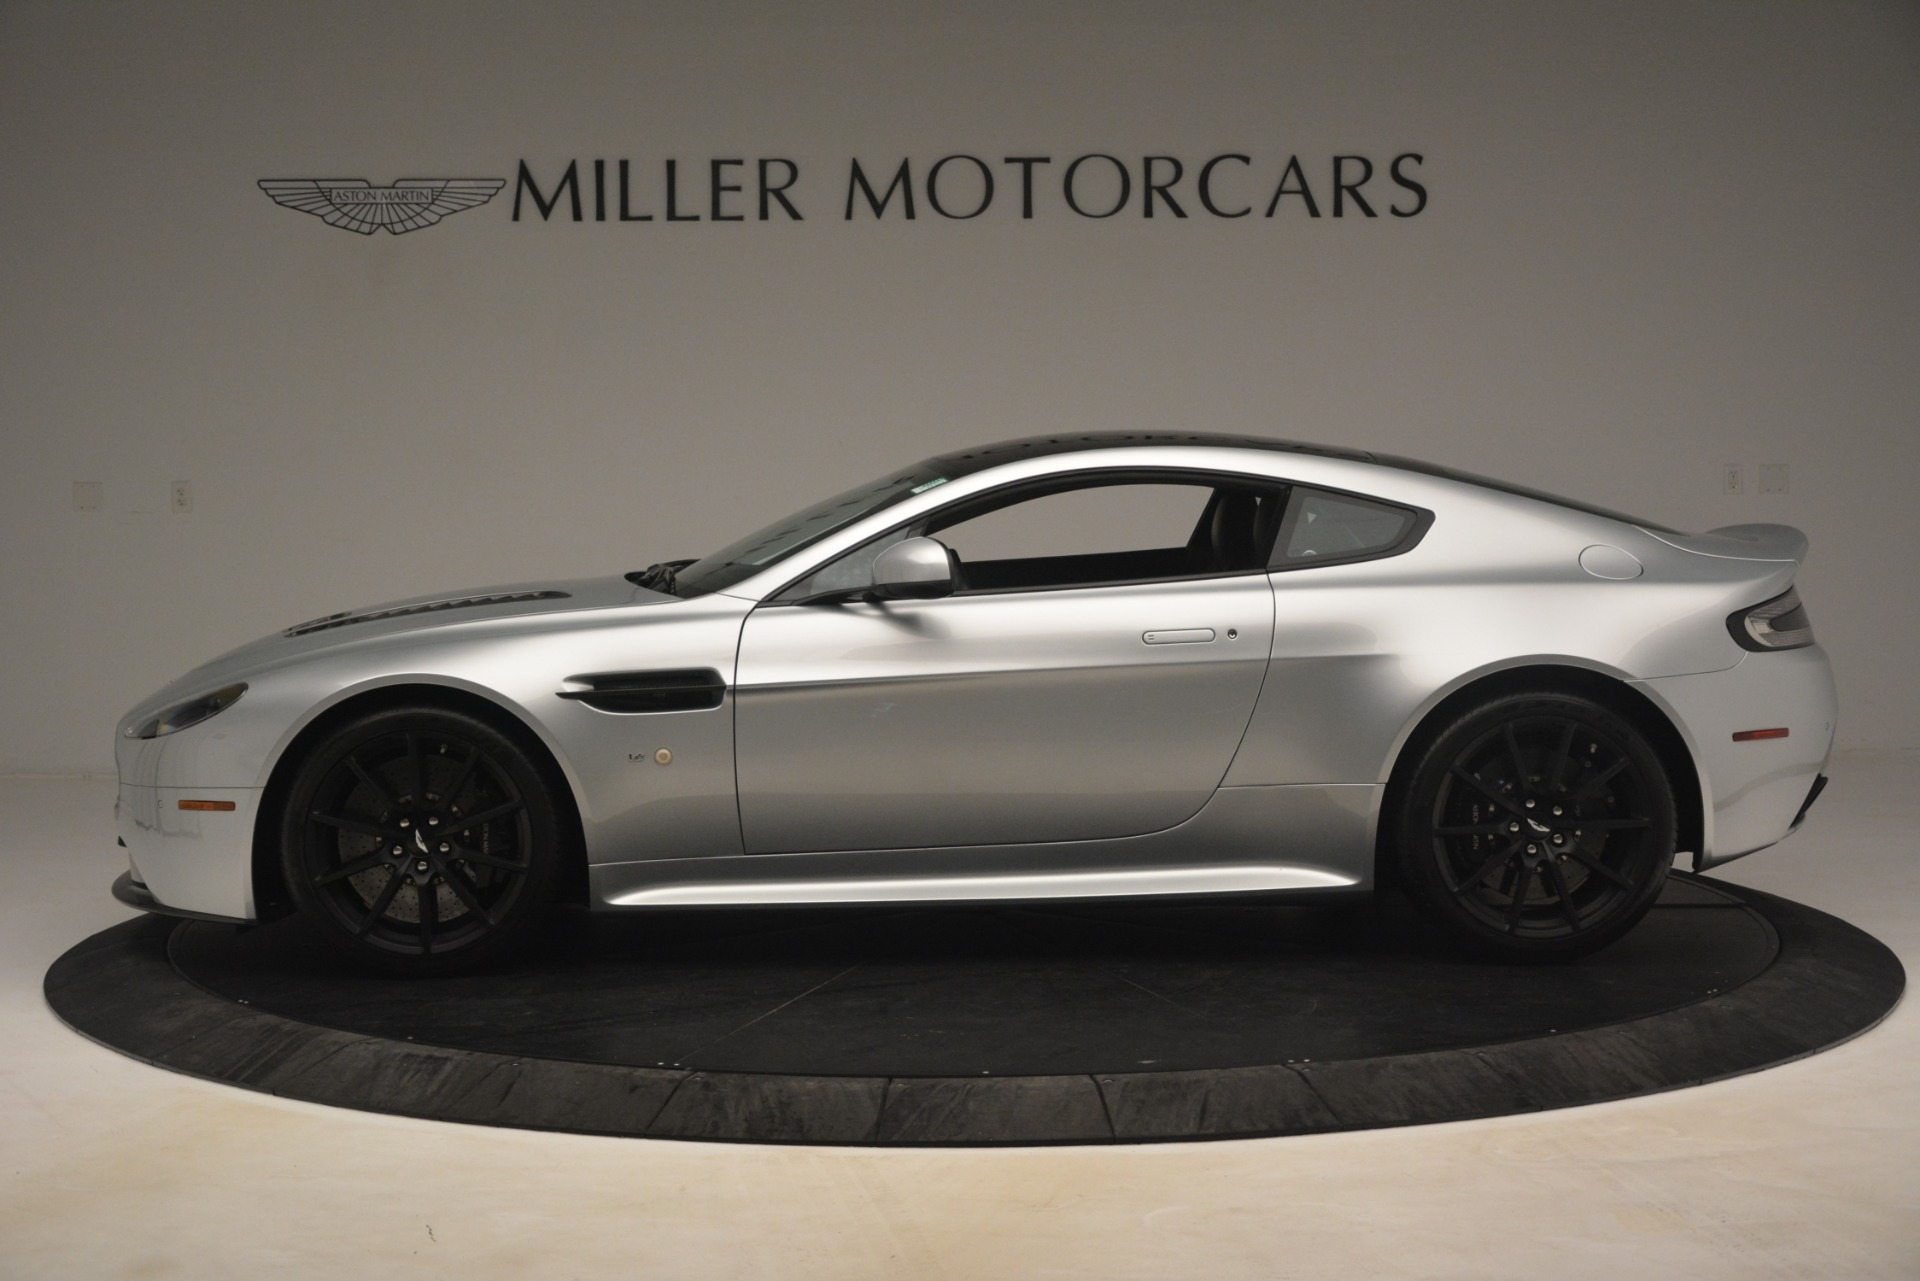 Used 2015 Aston Martin V12 Vantage S Coupe For Sale In Greenwich, CT. Alfa Romeo of Greenwich, 7577 3206_p3